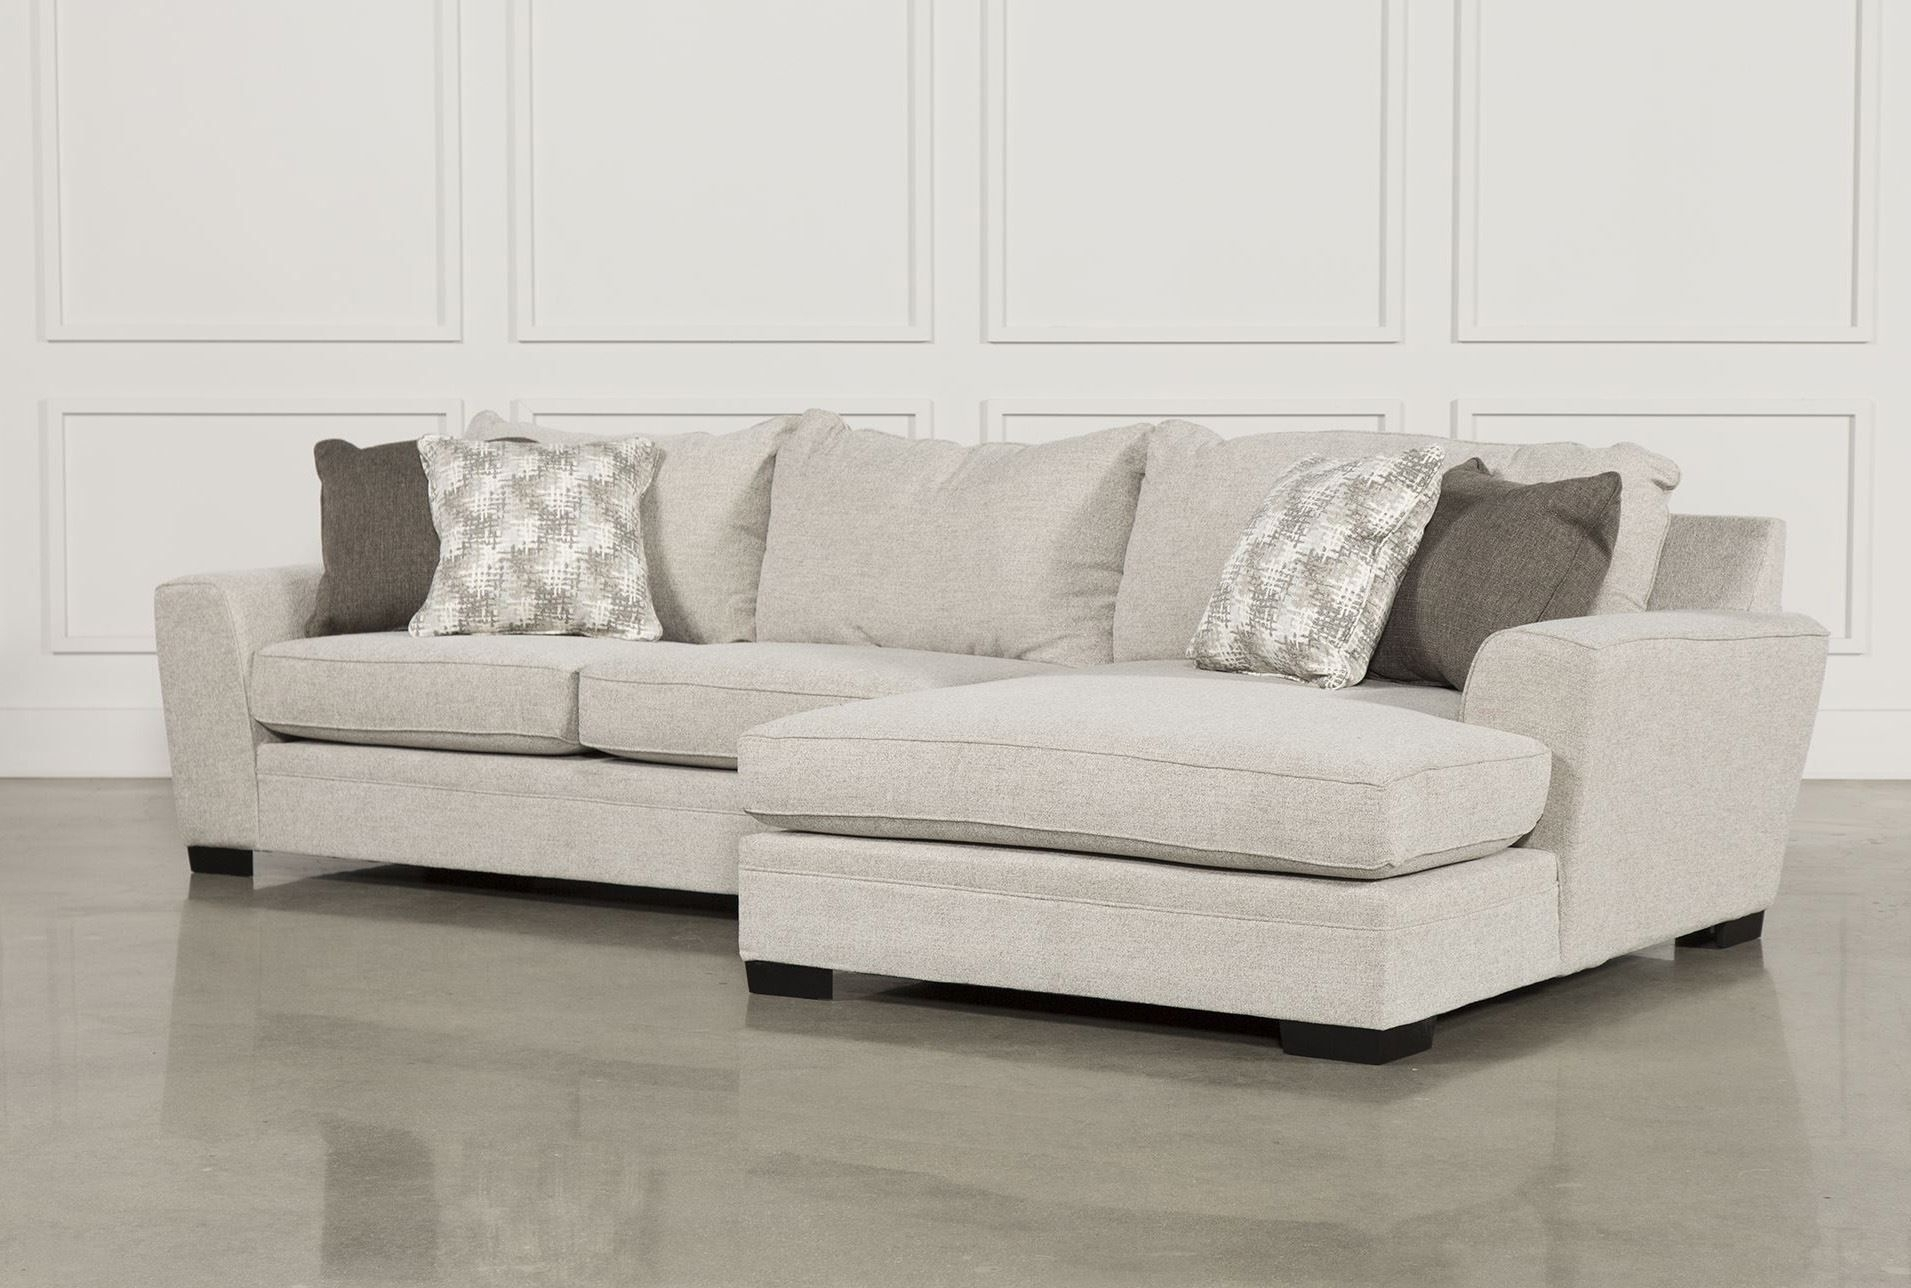 Delano 2 Piece Sectional W/raf Oversized Chaise | Furniture for Malbry Point 3 Piece Sectionals With Laf Chaise (Image 11 of 30)